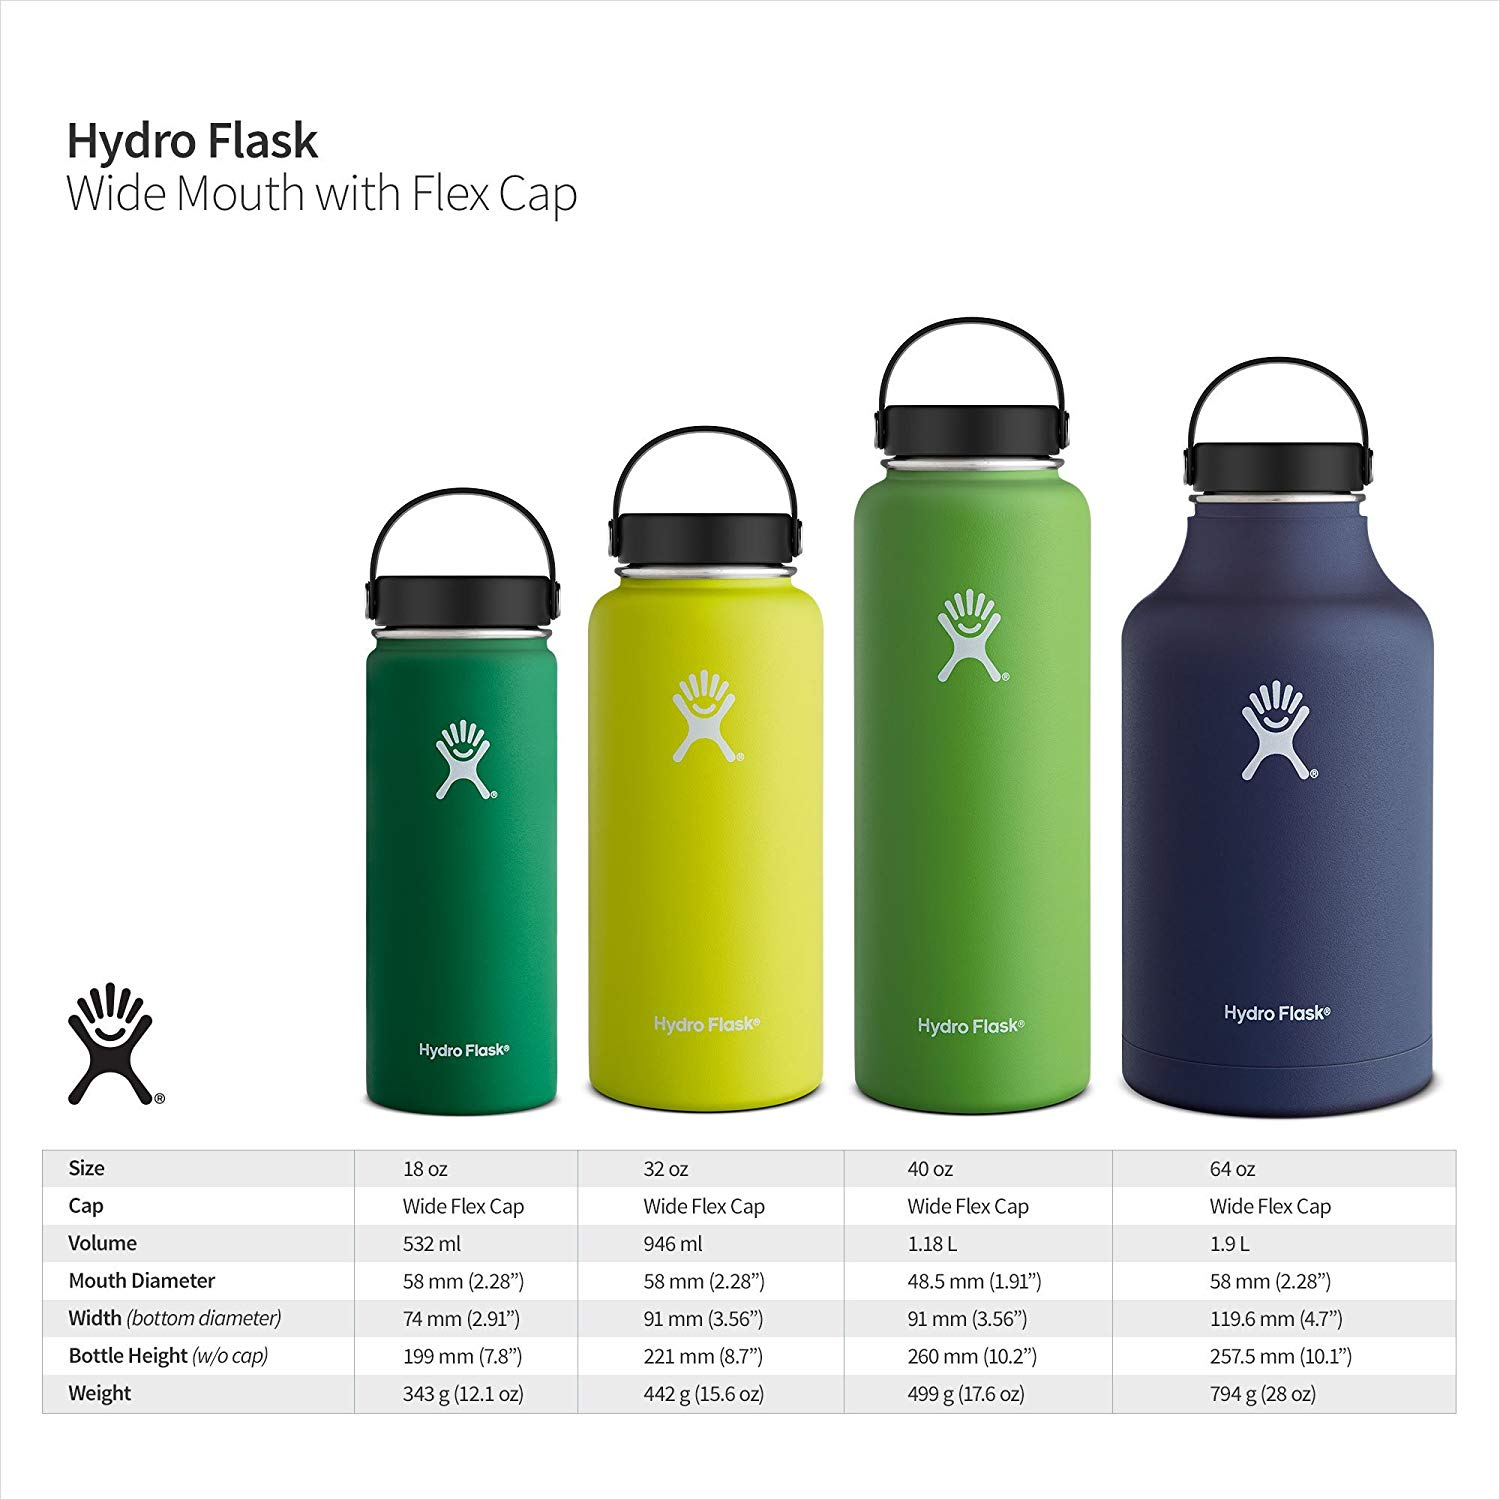 Comparison of Hydro Flask different sizes